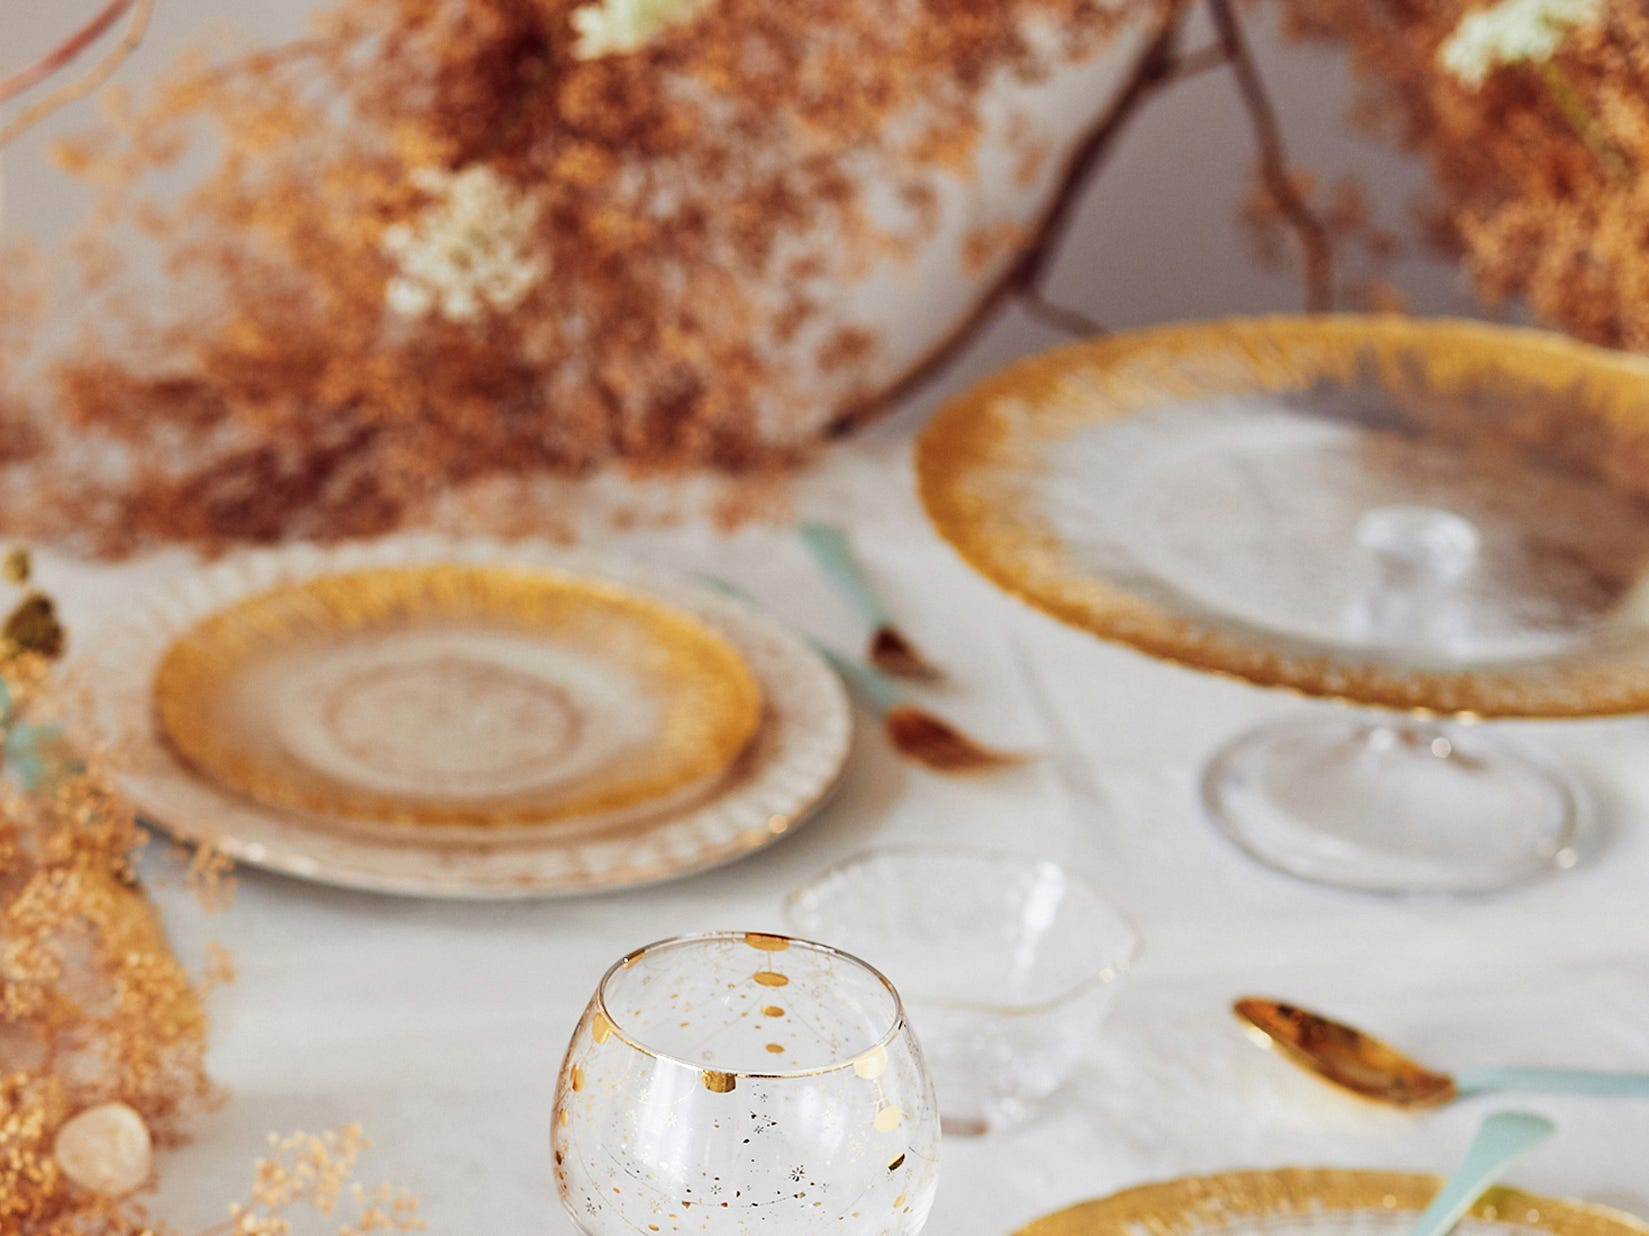 : A combination of gold-rimmed soda-lime glass with more rustic stoneware plates elegantly dress this table. The gold of the bordered Thistlewhit pieces beautifully blend with the russet tones in the decor. A surprise touch: gold Renscenca flatware with cool seafoam handles, all from Anthropologie.